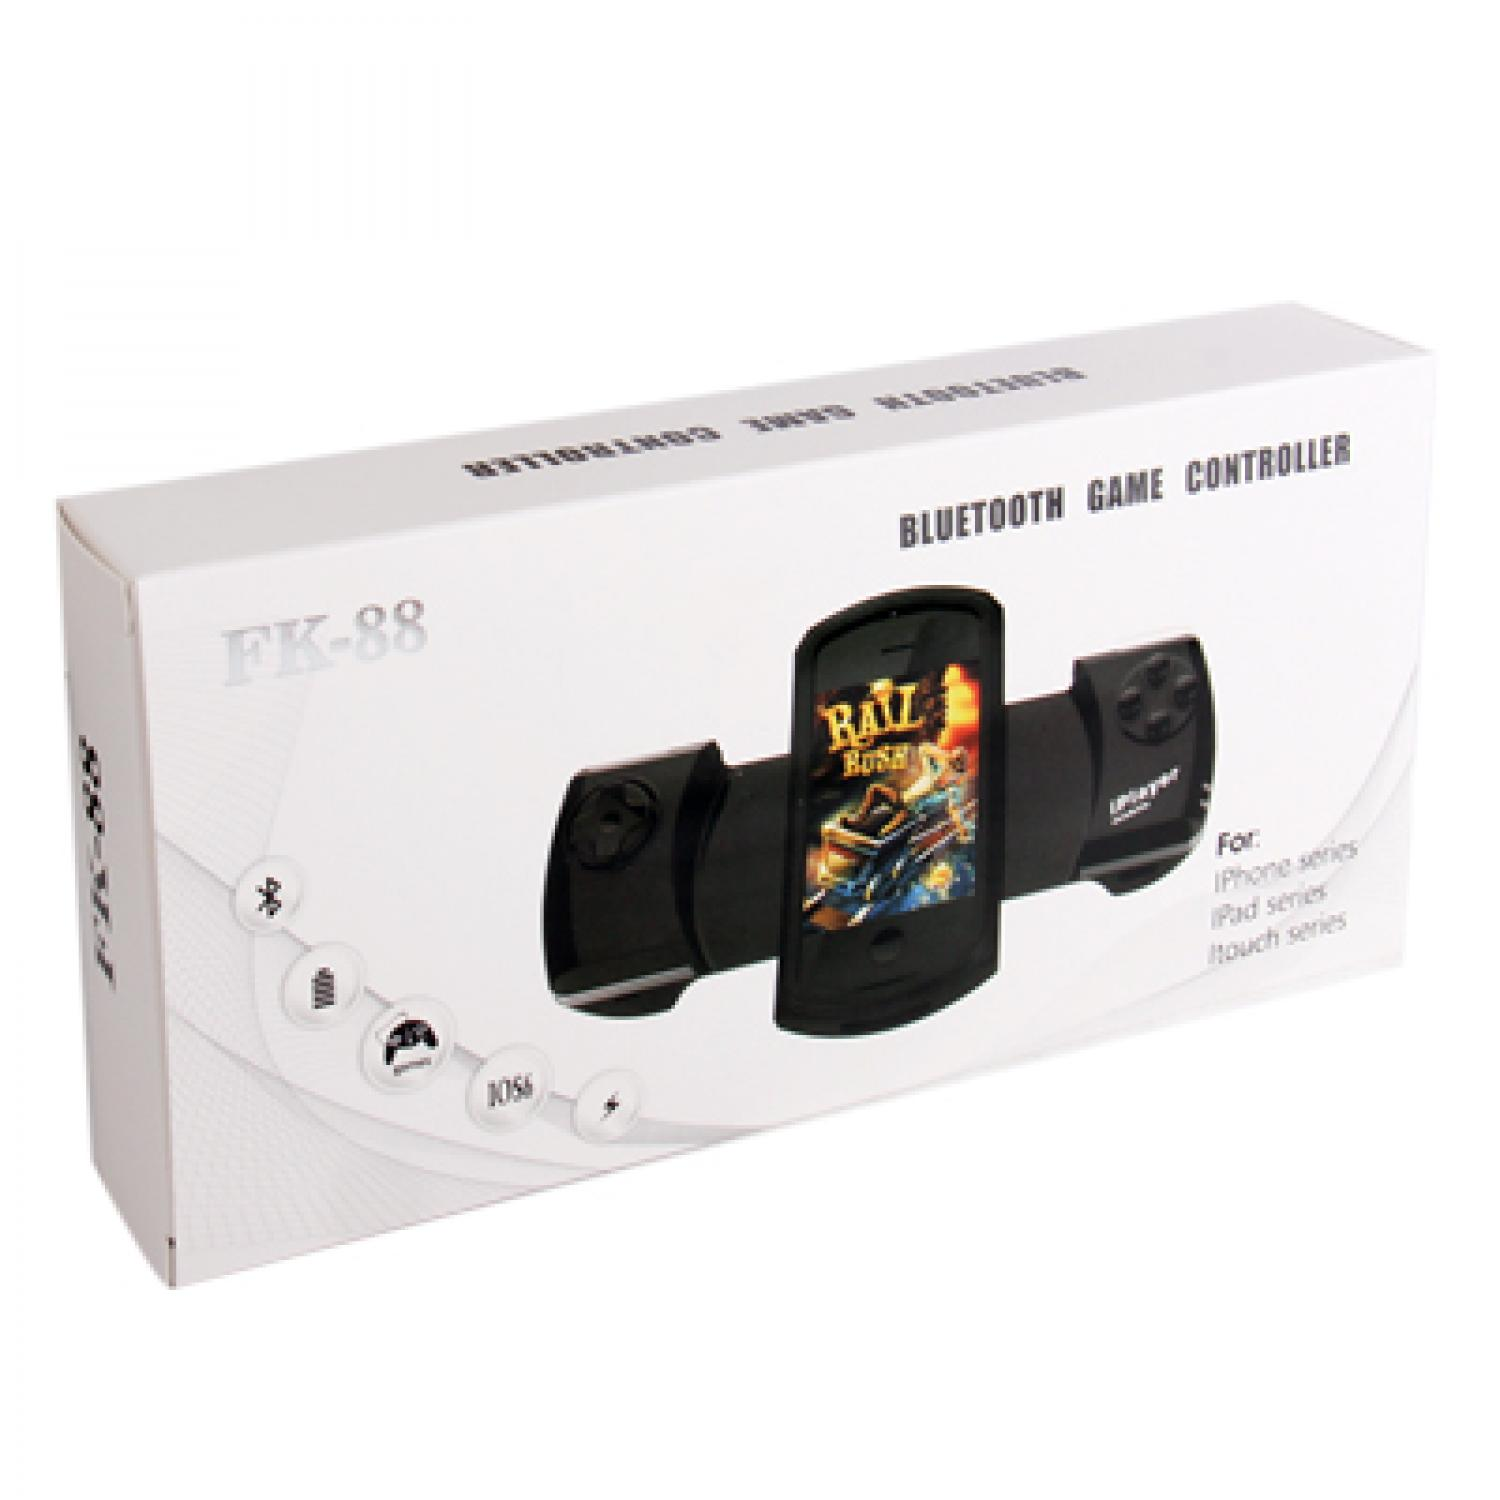 Wireless Bluetooth Game Controller for iPhone 4 & 4S/iPod Touch